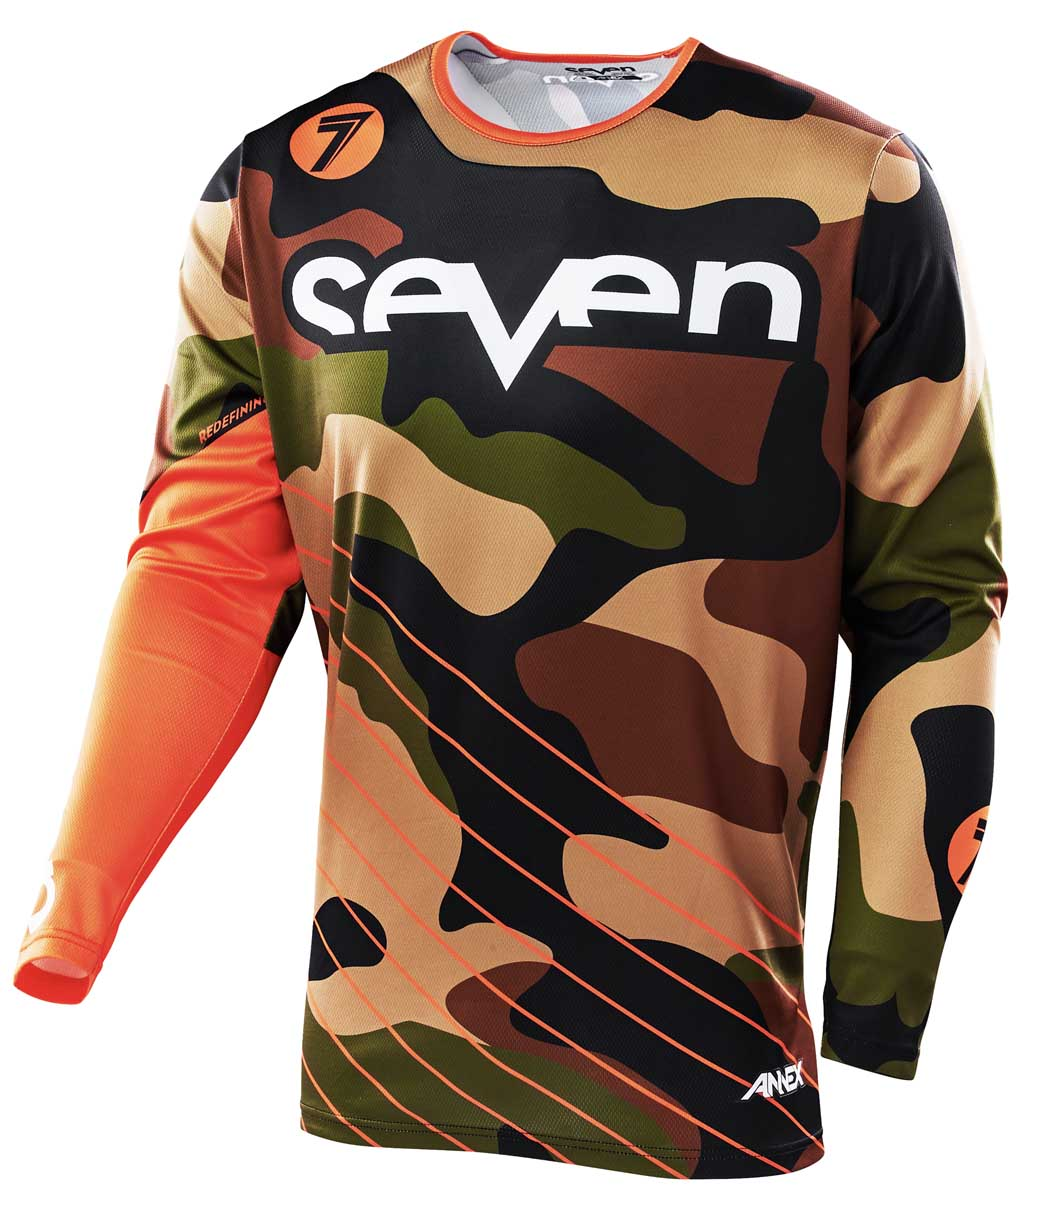 Annex Soldier Jersey - Orange